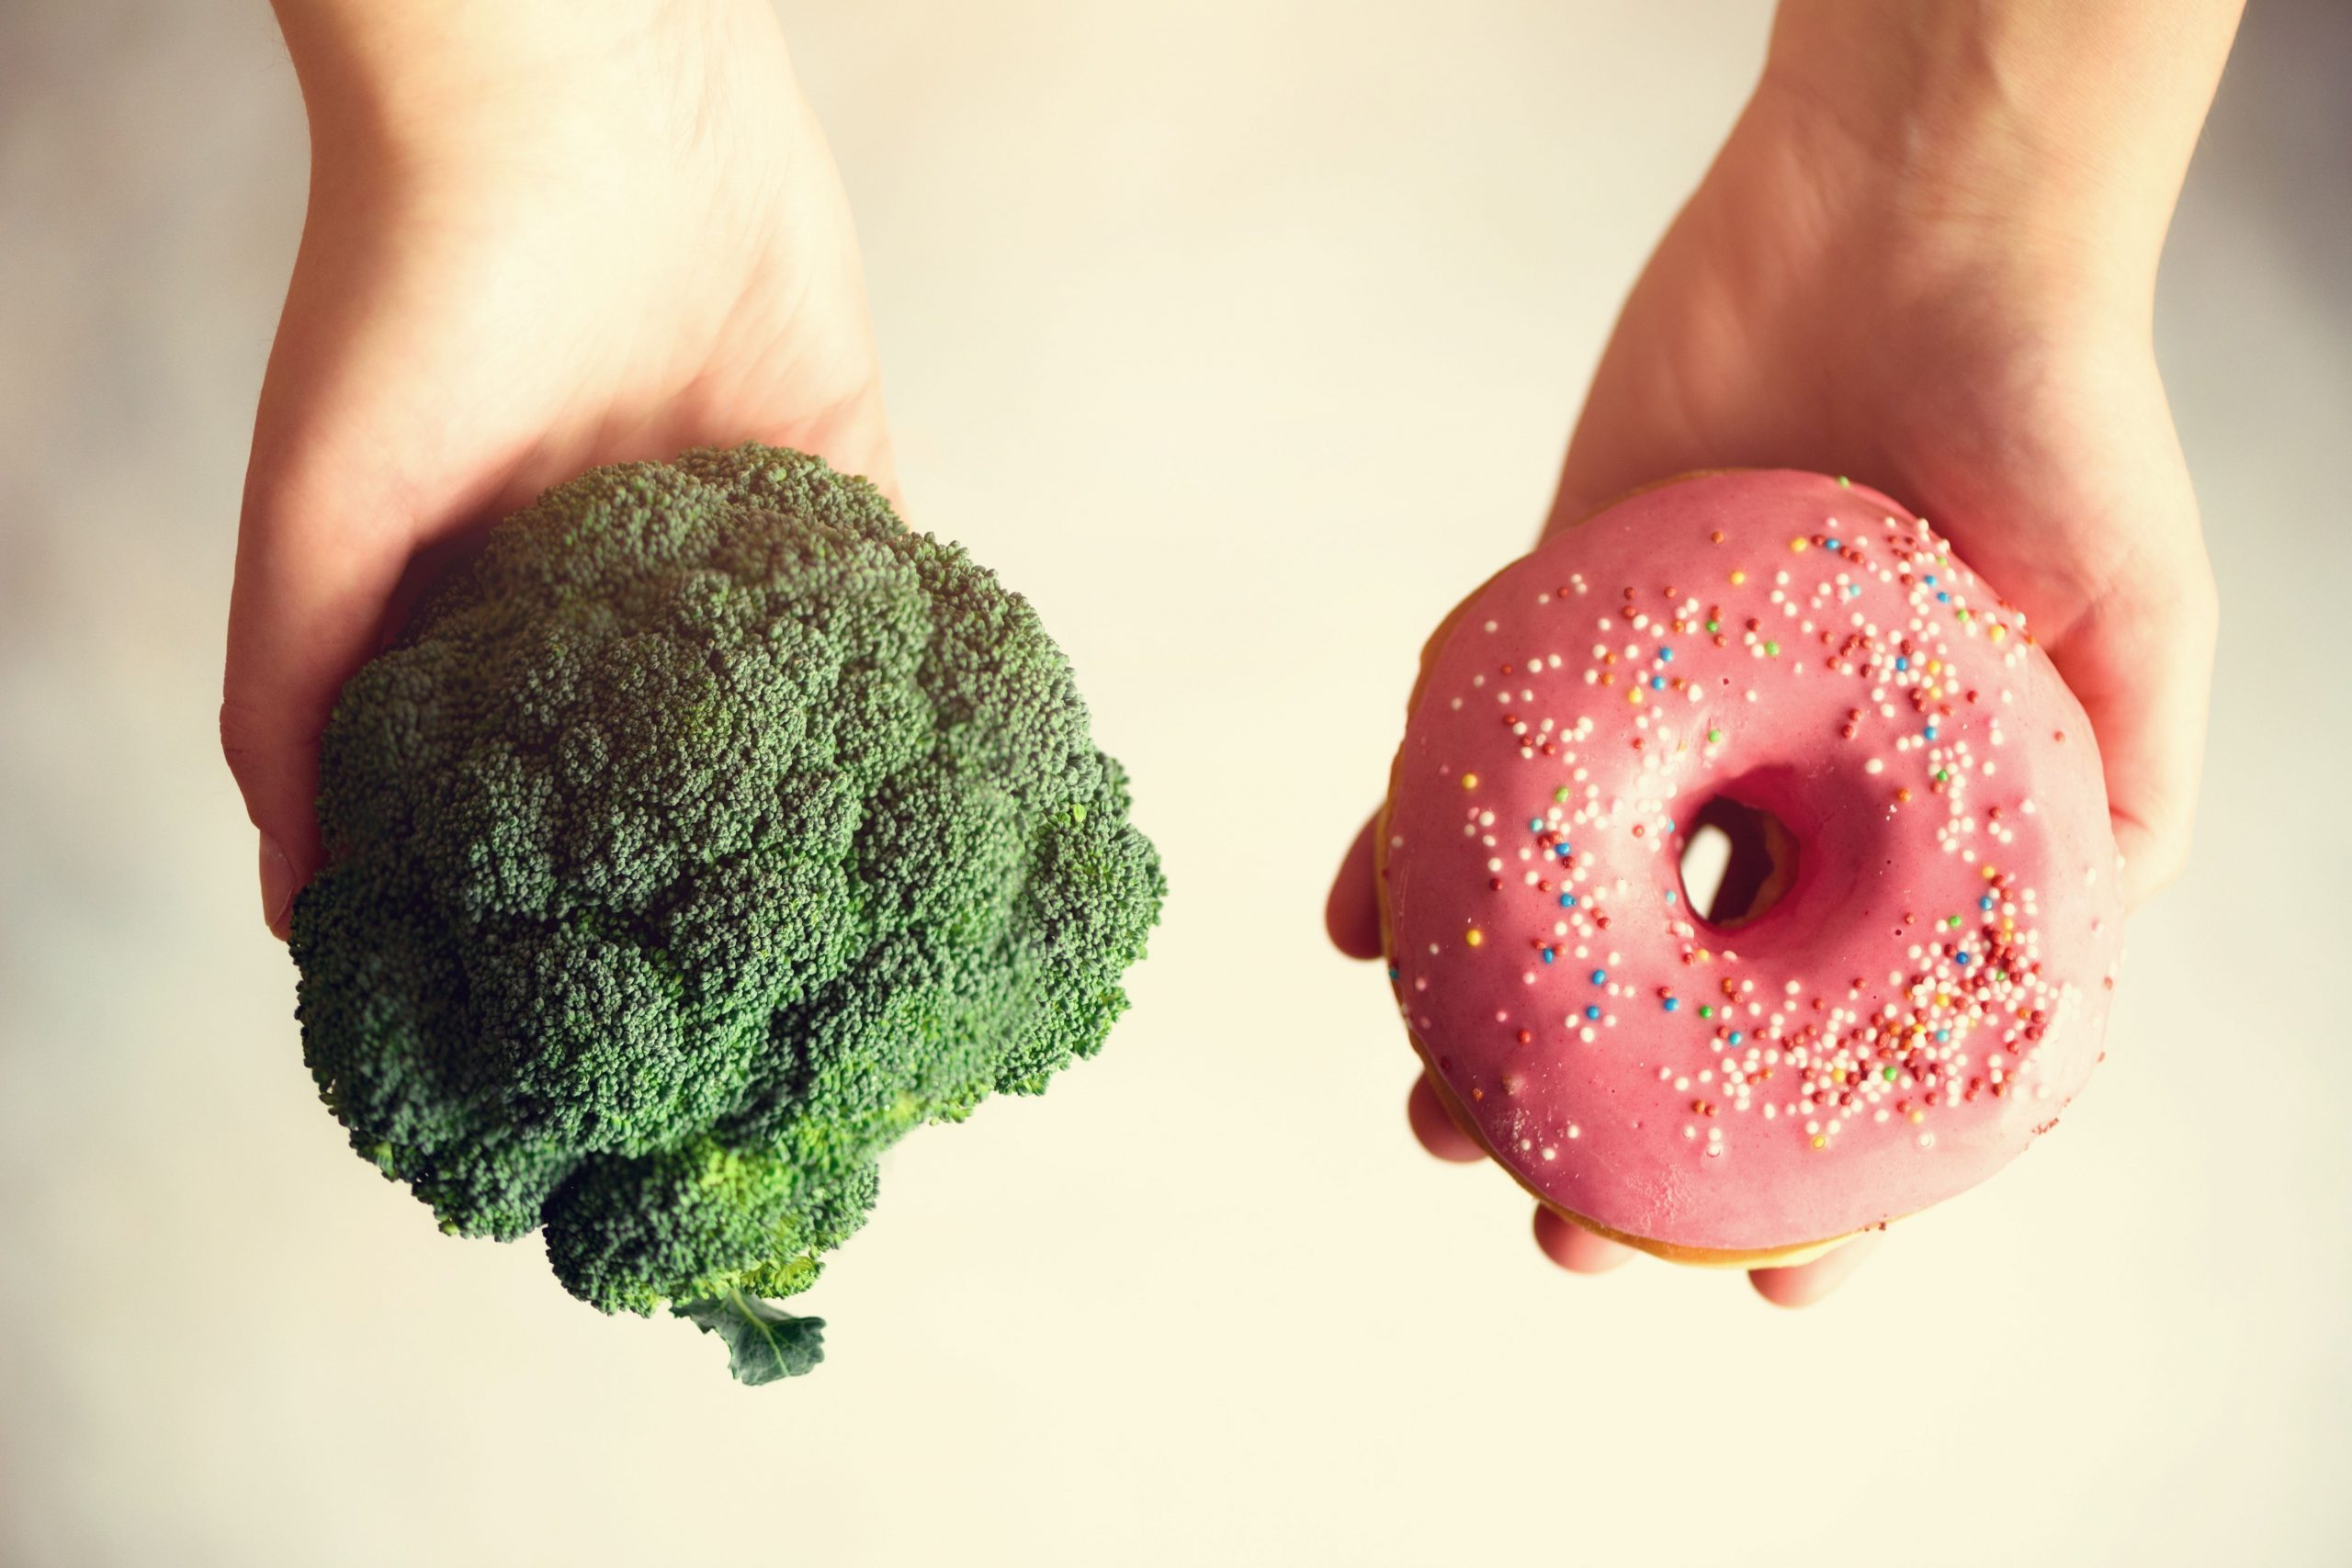 One had holding a broccoli crown. Another hand holding a donut with pink icing and sprinkles